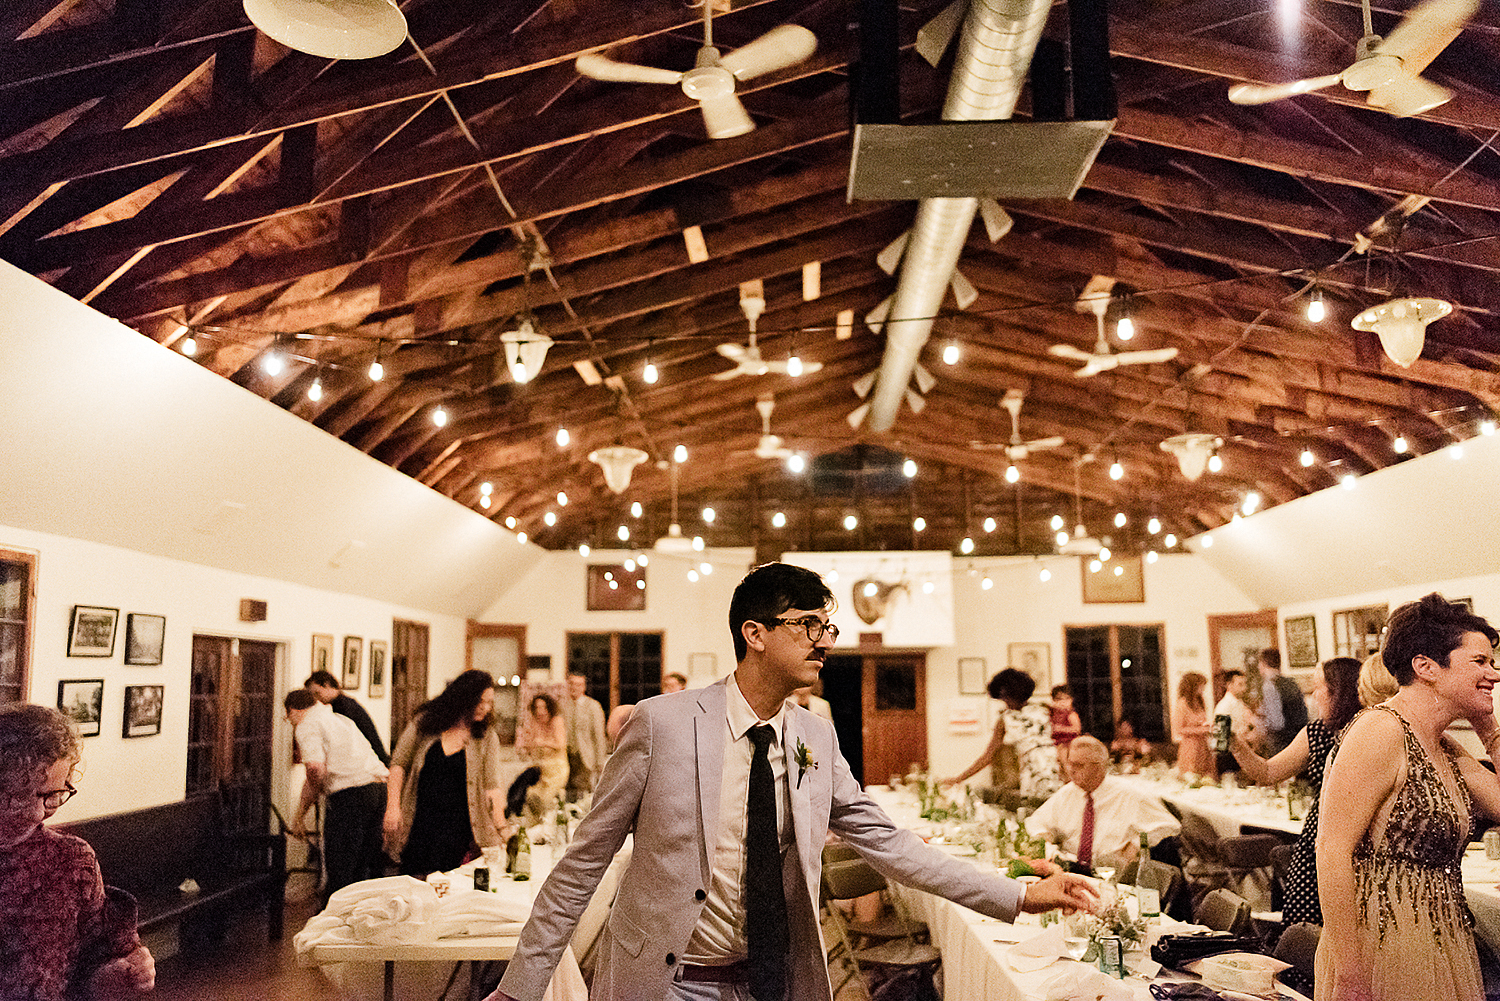 Best-Wedding-Photographers-in-Toronto-with-Photojournalistic-Documentary-Style-3B-Photography-Brian-Batista-Bettencourt-Intimate-Vintage-Wedding-at-Toronto-Island-Cafe-Clubhouse-Reception-Groom-Dancing-Epic.jpg